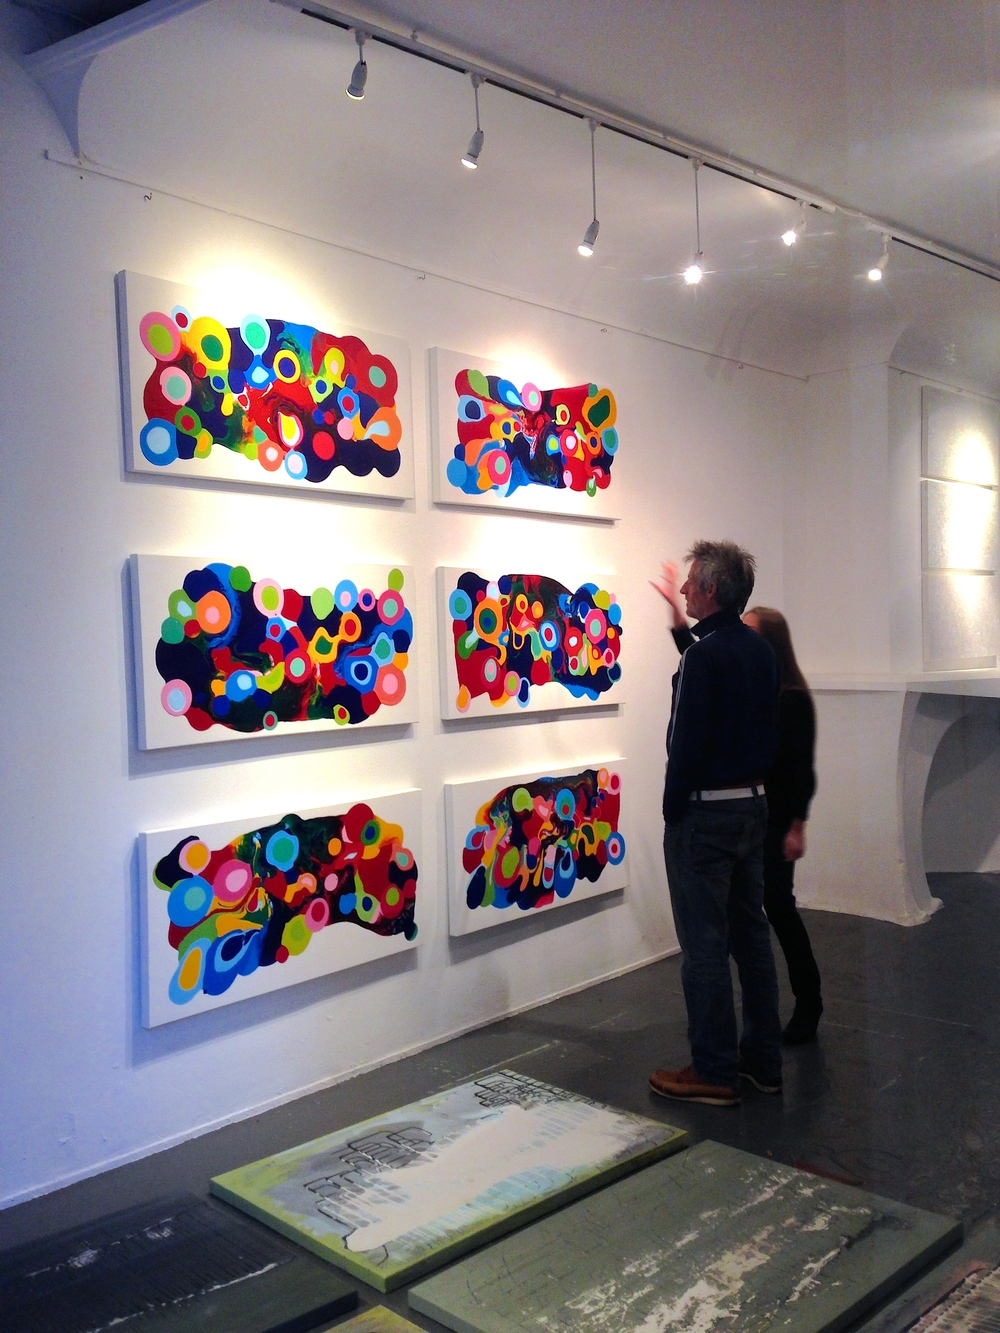 Art gallery studio amsterdam large paintings 2.jpg